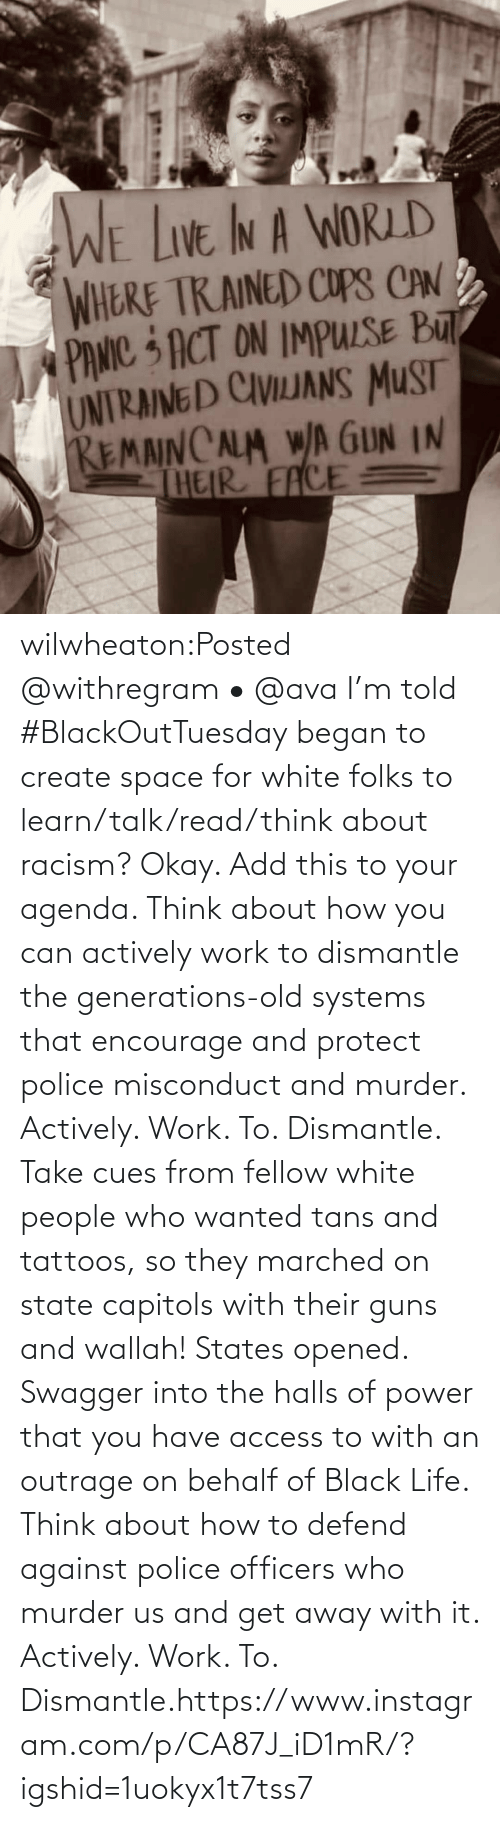 how: wilwheaton:Posted @withregram • @ava I'm told #BlackOutTuesday began to create space for white folks to learn/talk/read/think about racism? Okay. Add this to your agenda. Think about how you can actively work to dismantle the generations-old systems that encourage and protect police misconduct and murder. Actively. Work. To. Dismantle. Take cues from fellow white people who wanted tans and tattoos, so they marched on state capitols with their guns and wallah! States opened. Swagger into the halls of power that you have access to with an outrage on behalf of Black Life. Think about how to defend against police officers who murder us and get away with it. Actively. Work. To. Dismantle.https://www.instagram.com/p/CA87J_iD1mR/?igshid=1uokyx1t7tss7